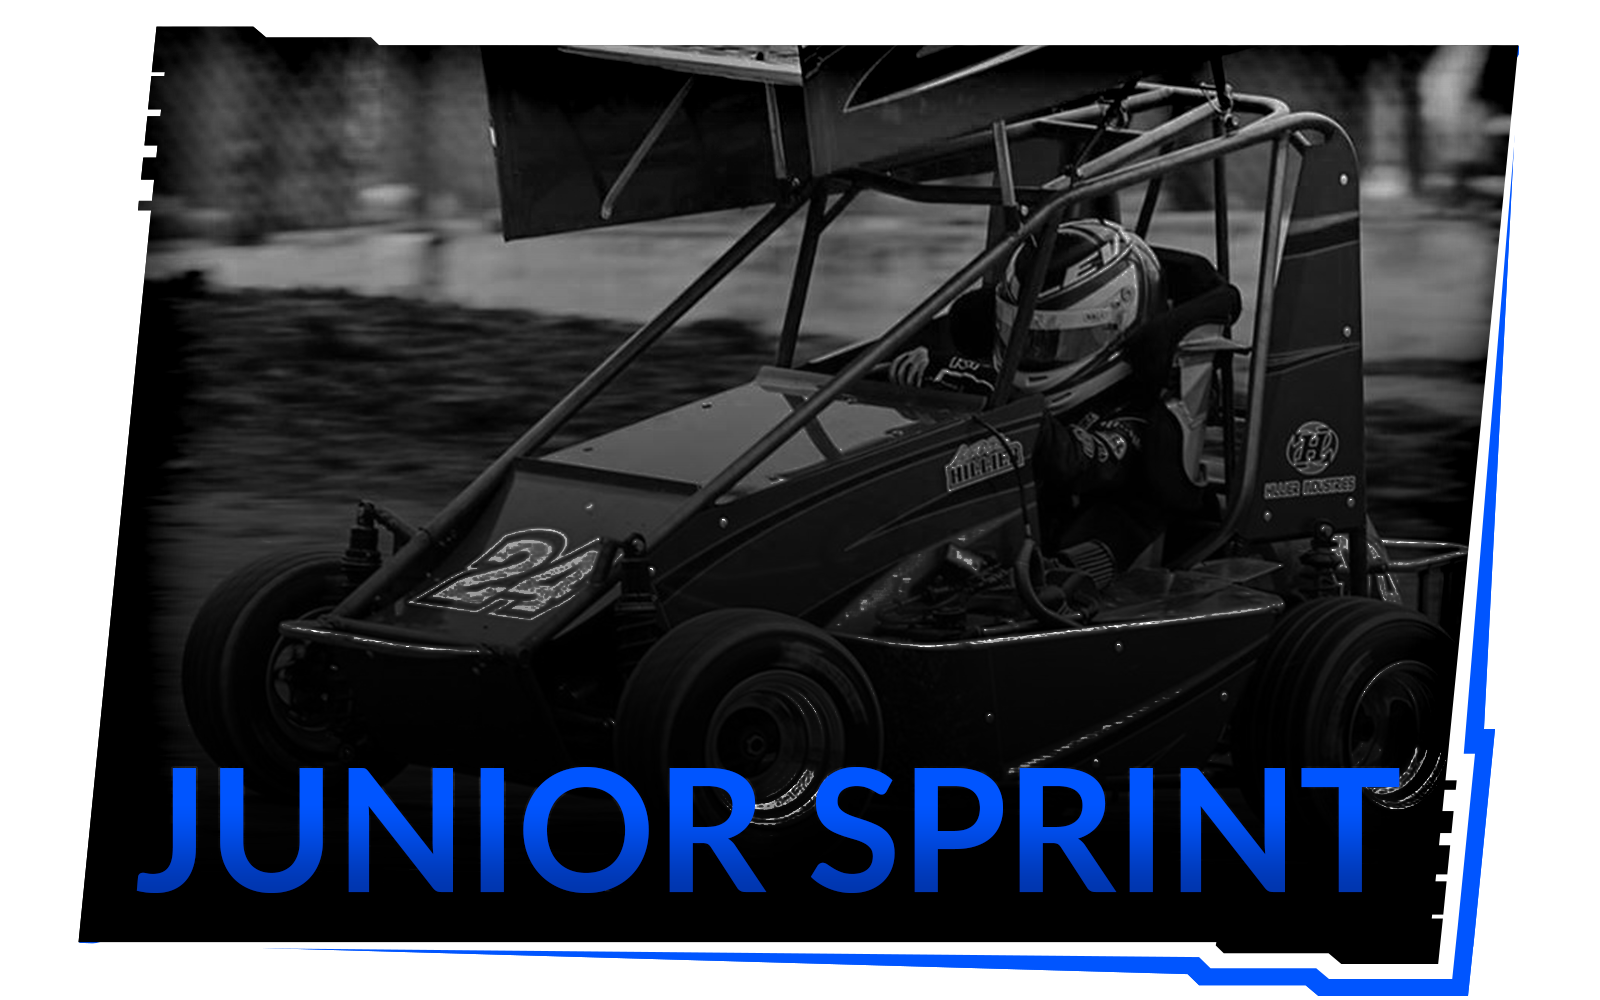 Jr. Sprint Schock Package